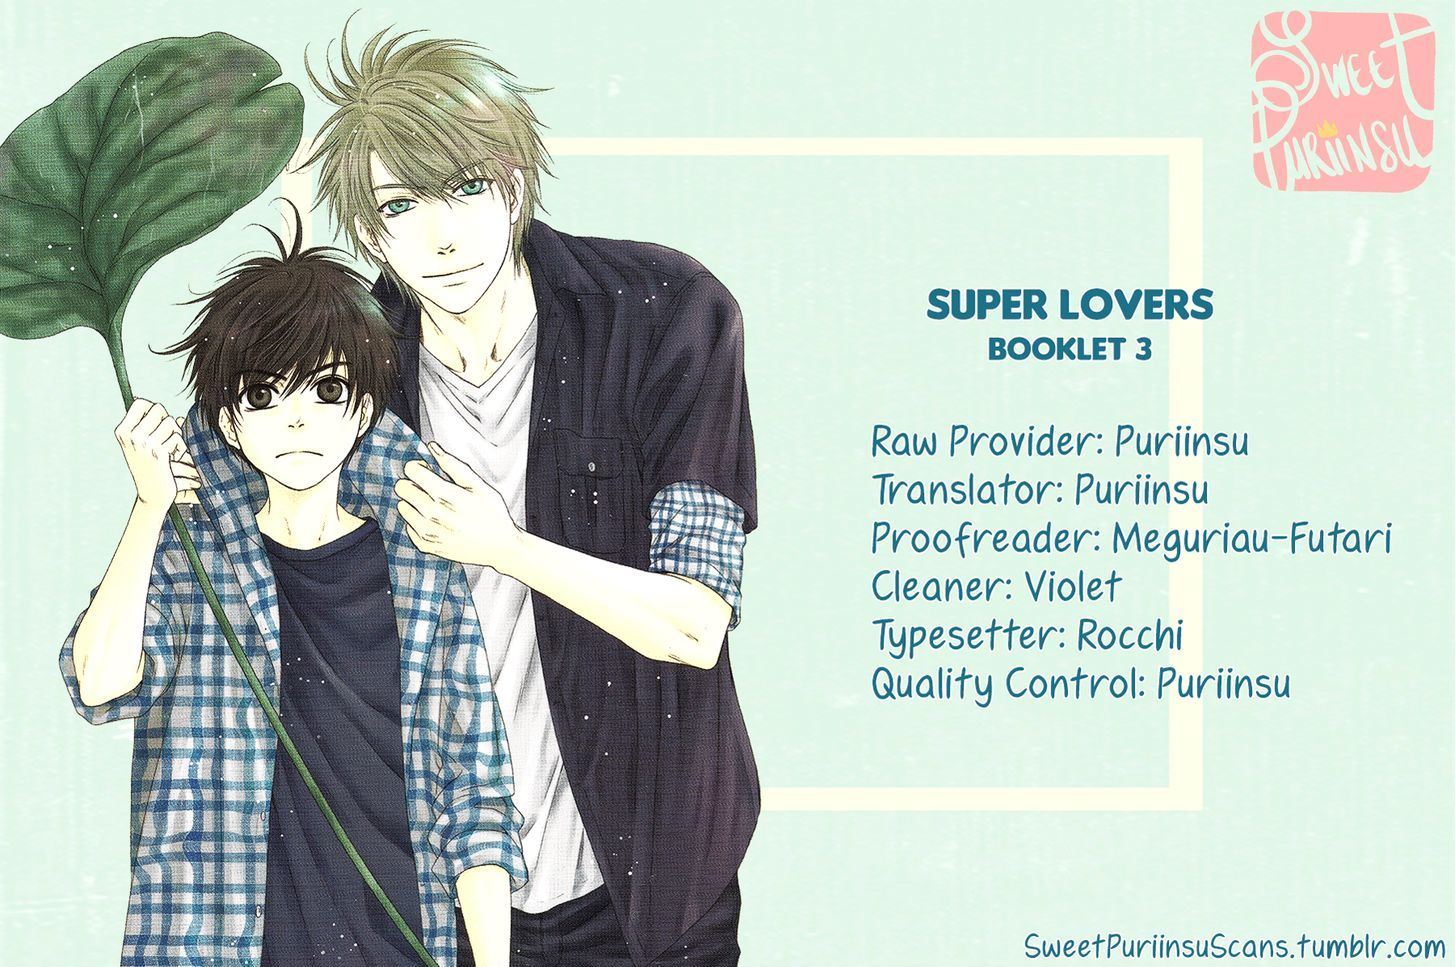 http://im.nineanime.com/comics/pic9/30/17438/293811/SuperLovers2910828.jpg Page 1